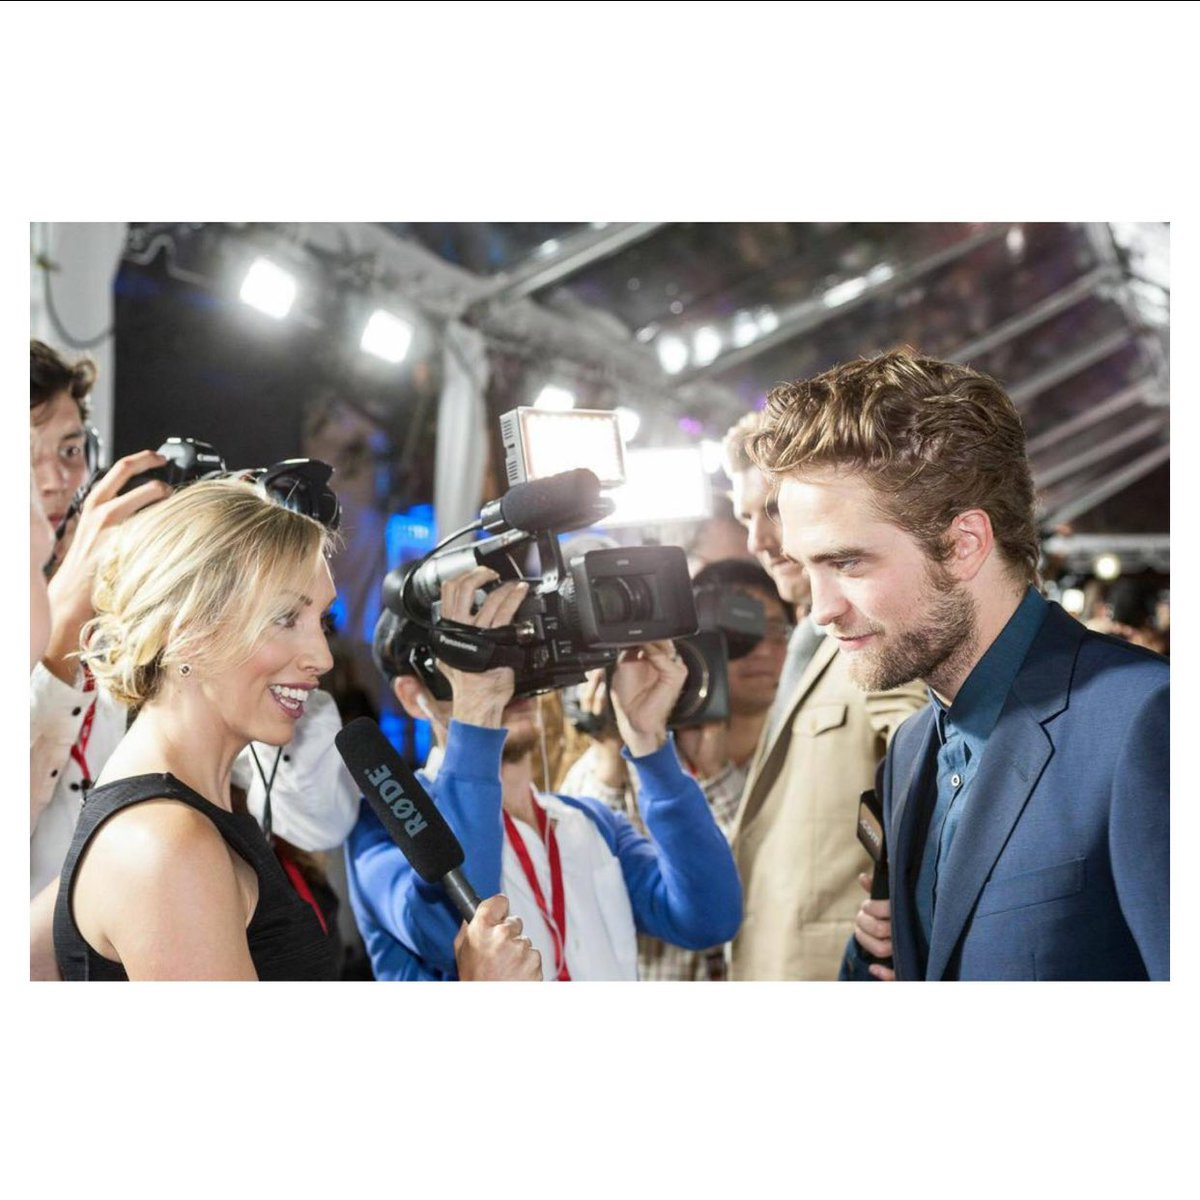 A fun red carpet memory from 2013. Interviewing Robert Pattinson for @eOnefilms #TIFF #EONE https://t.co/7BjBNVsK21